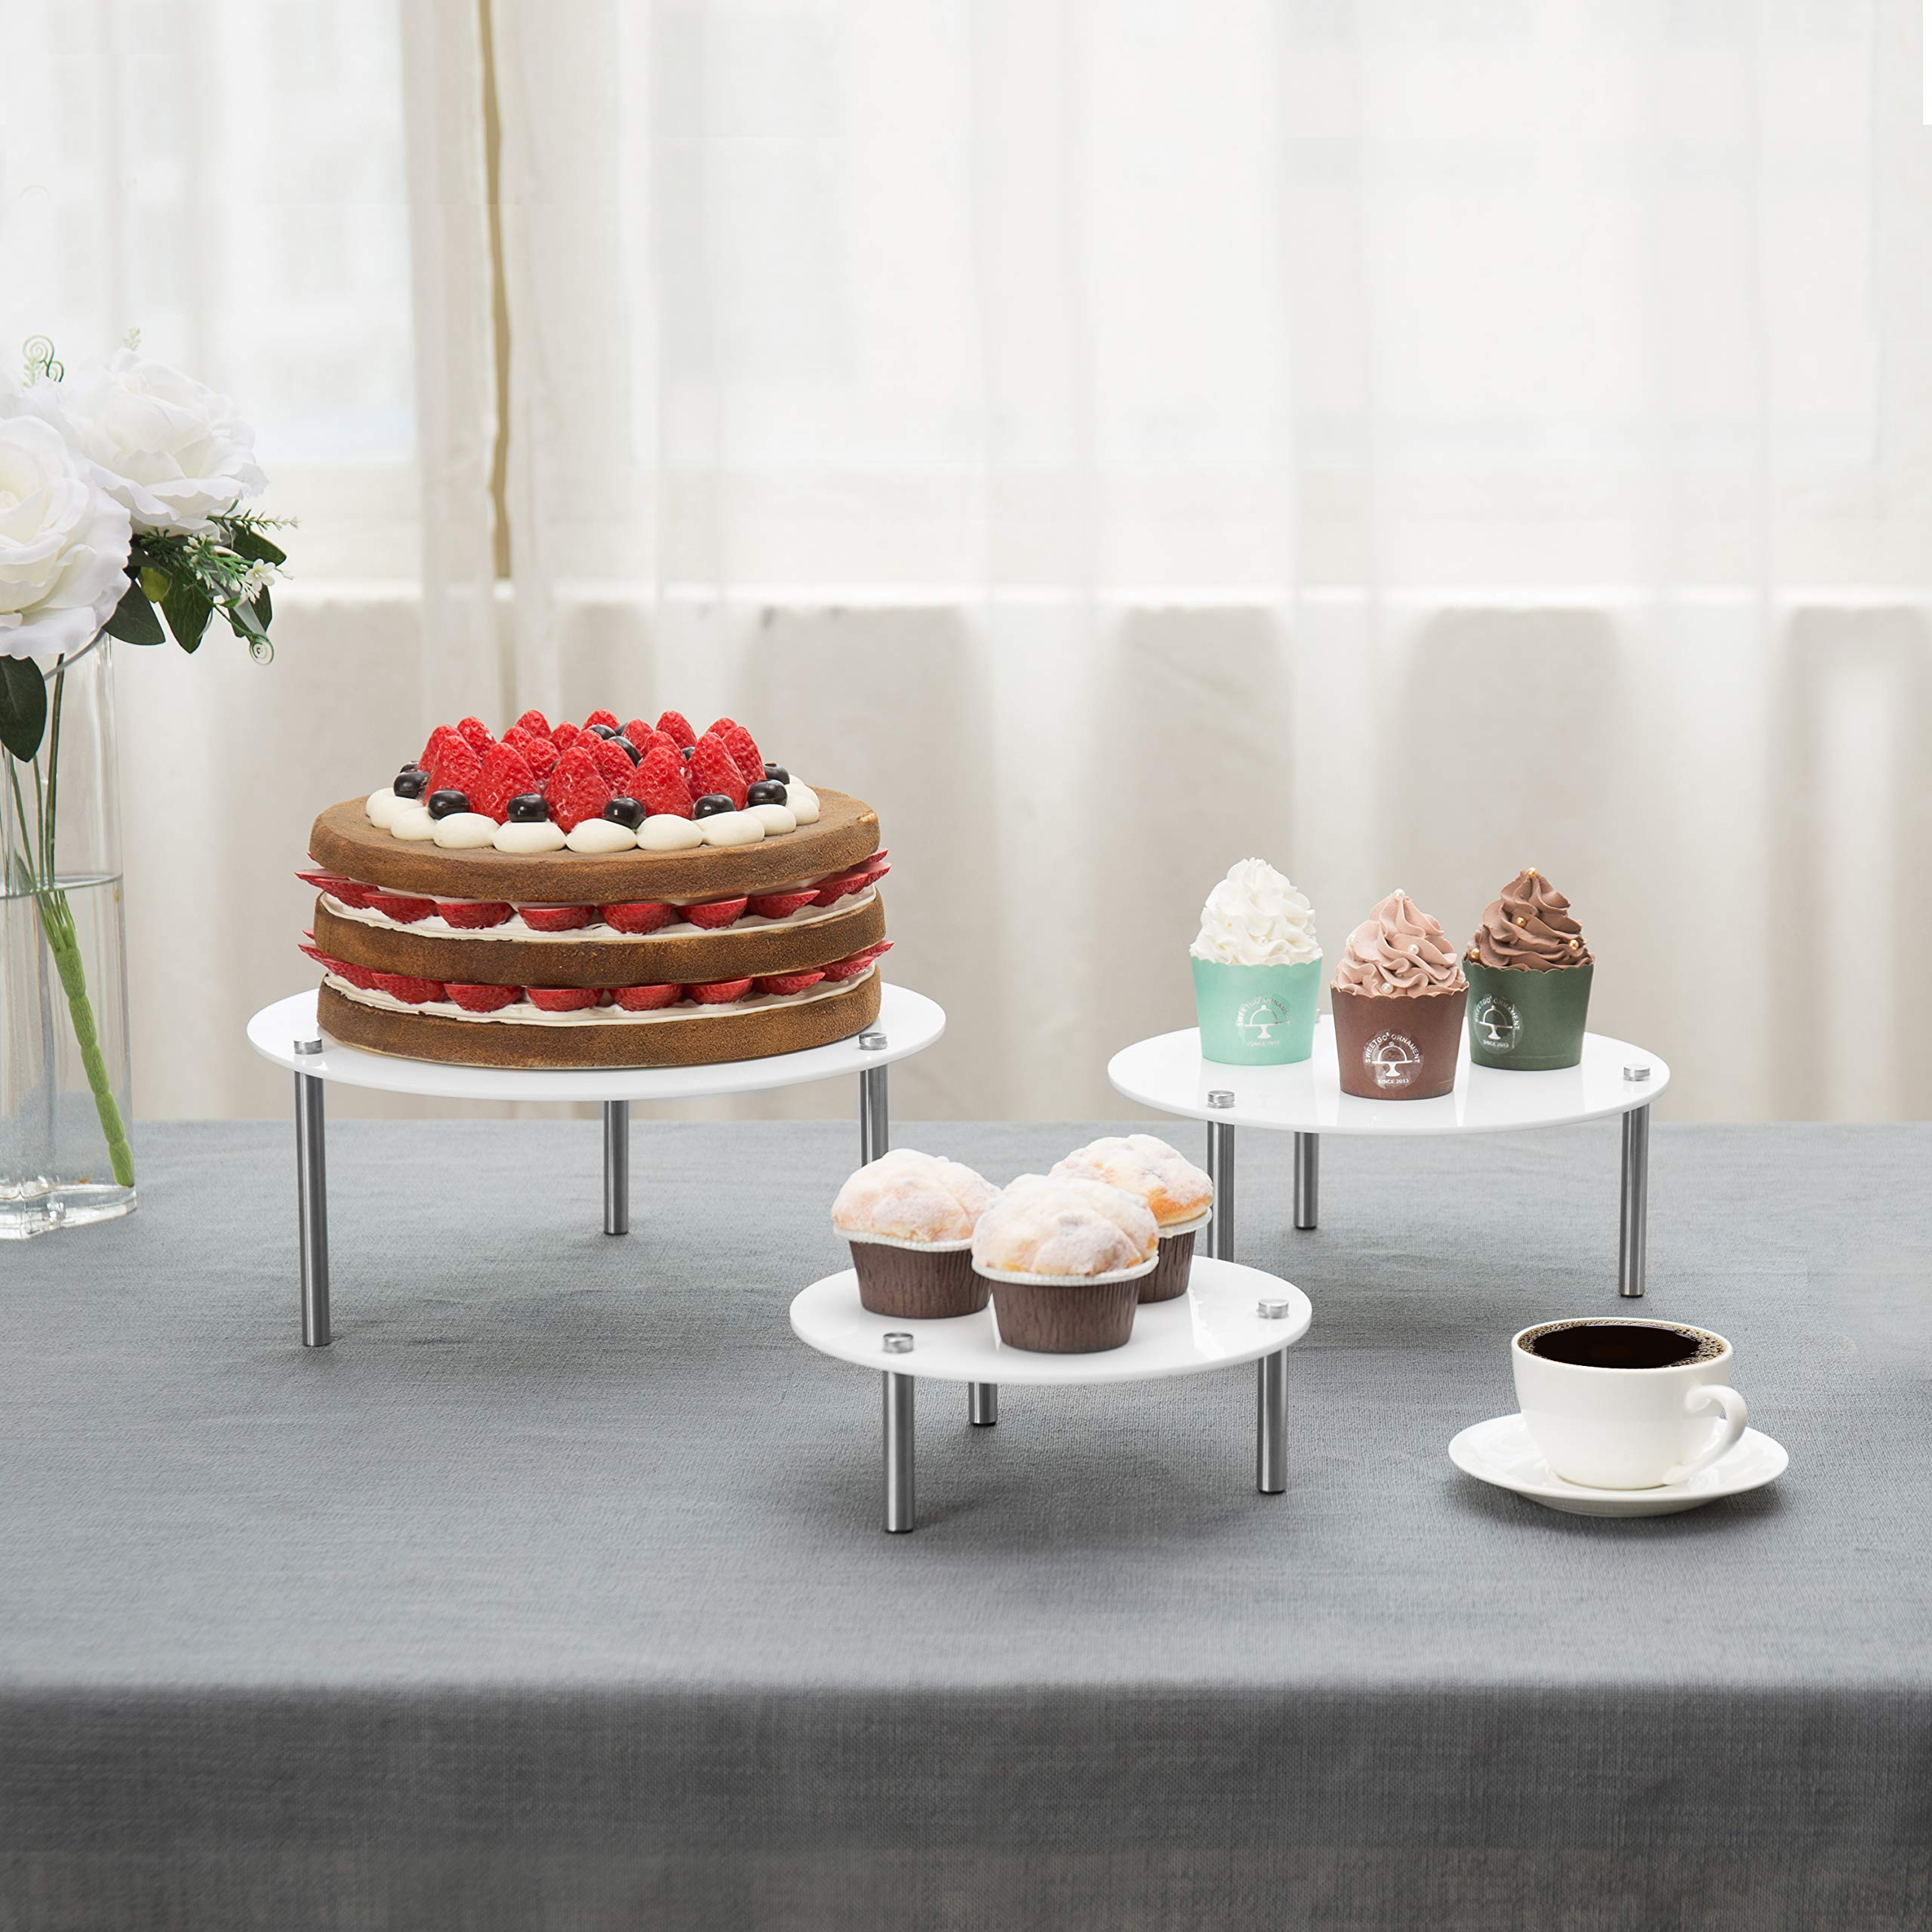 MyGift 3-Tier Round White Acrylic Cupcake Display Riser Stands by MyGift